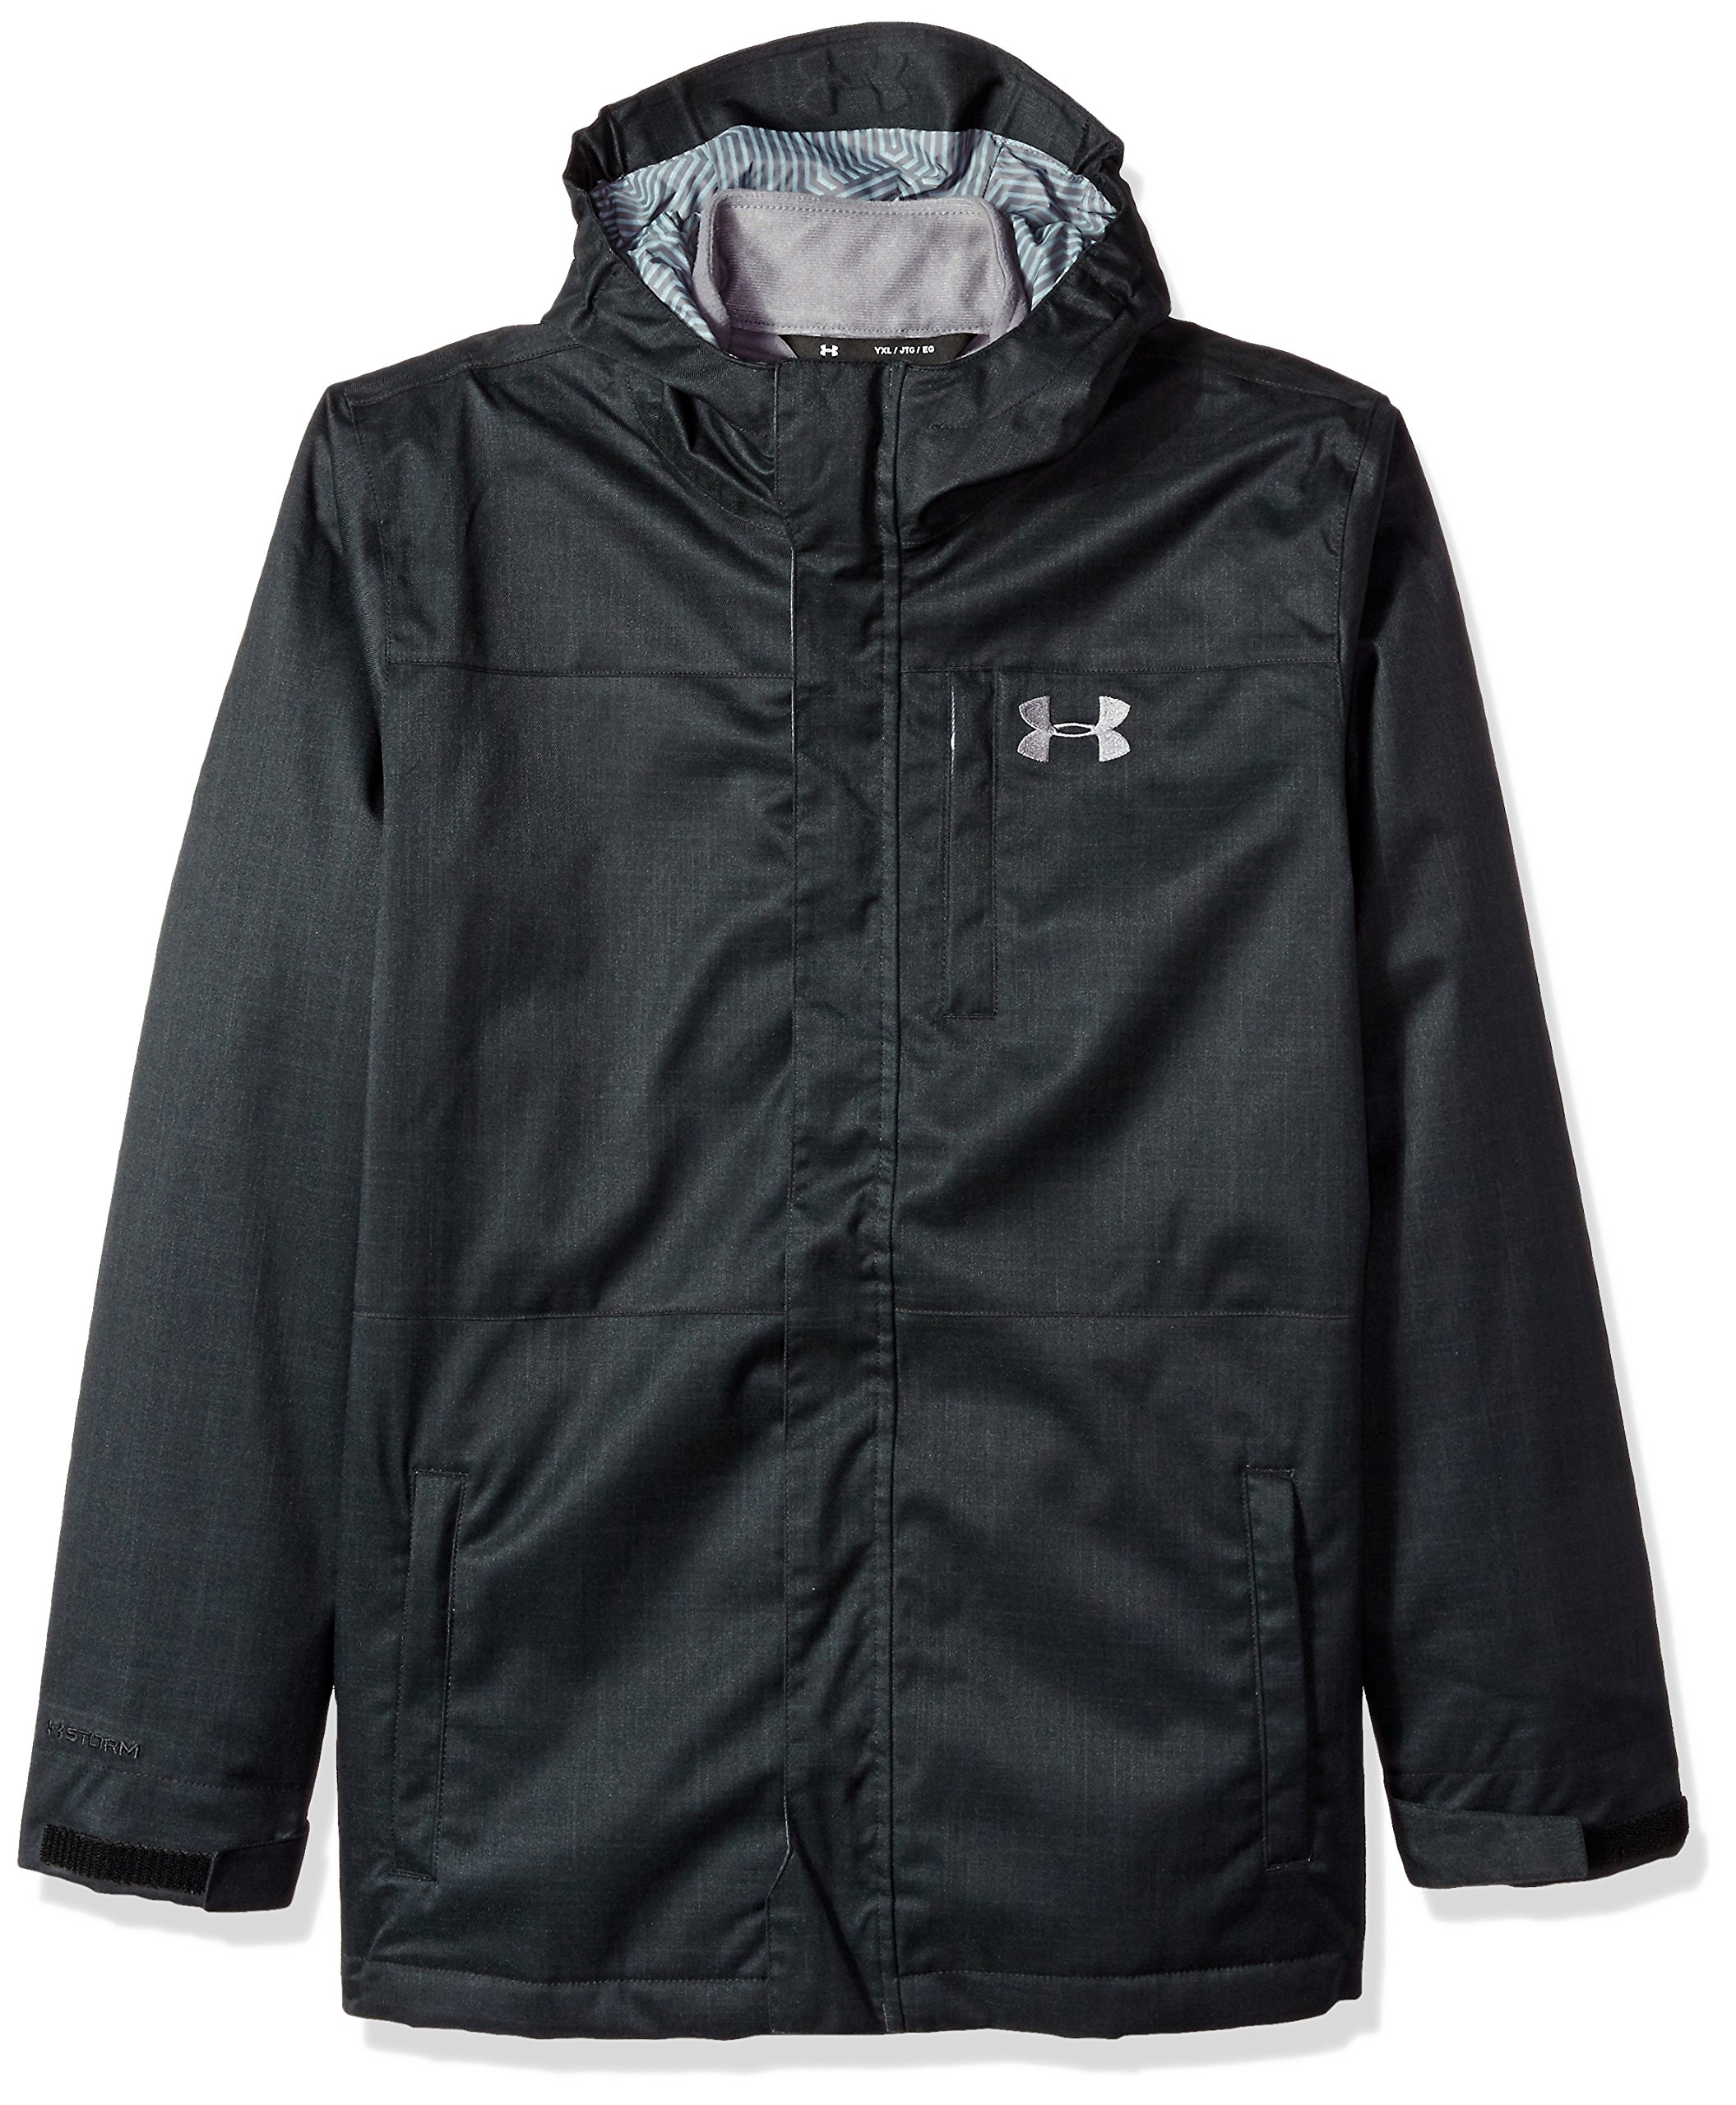 Under Armour Outerwear Boys' UA CGI Wildwood 3-in-1 (Big Kids), Black (002)/Graphite, Youth Medium